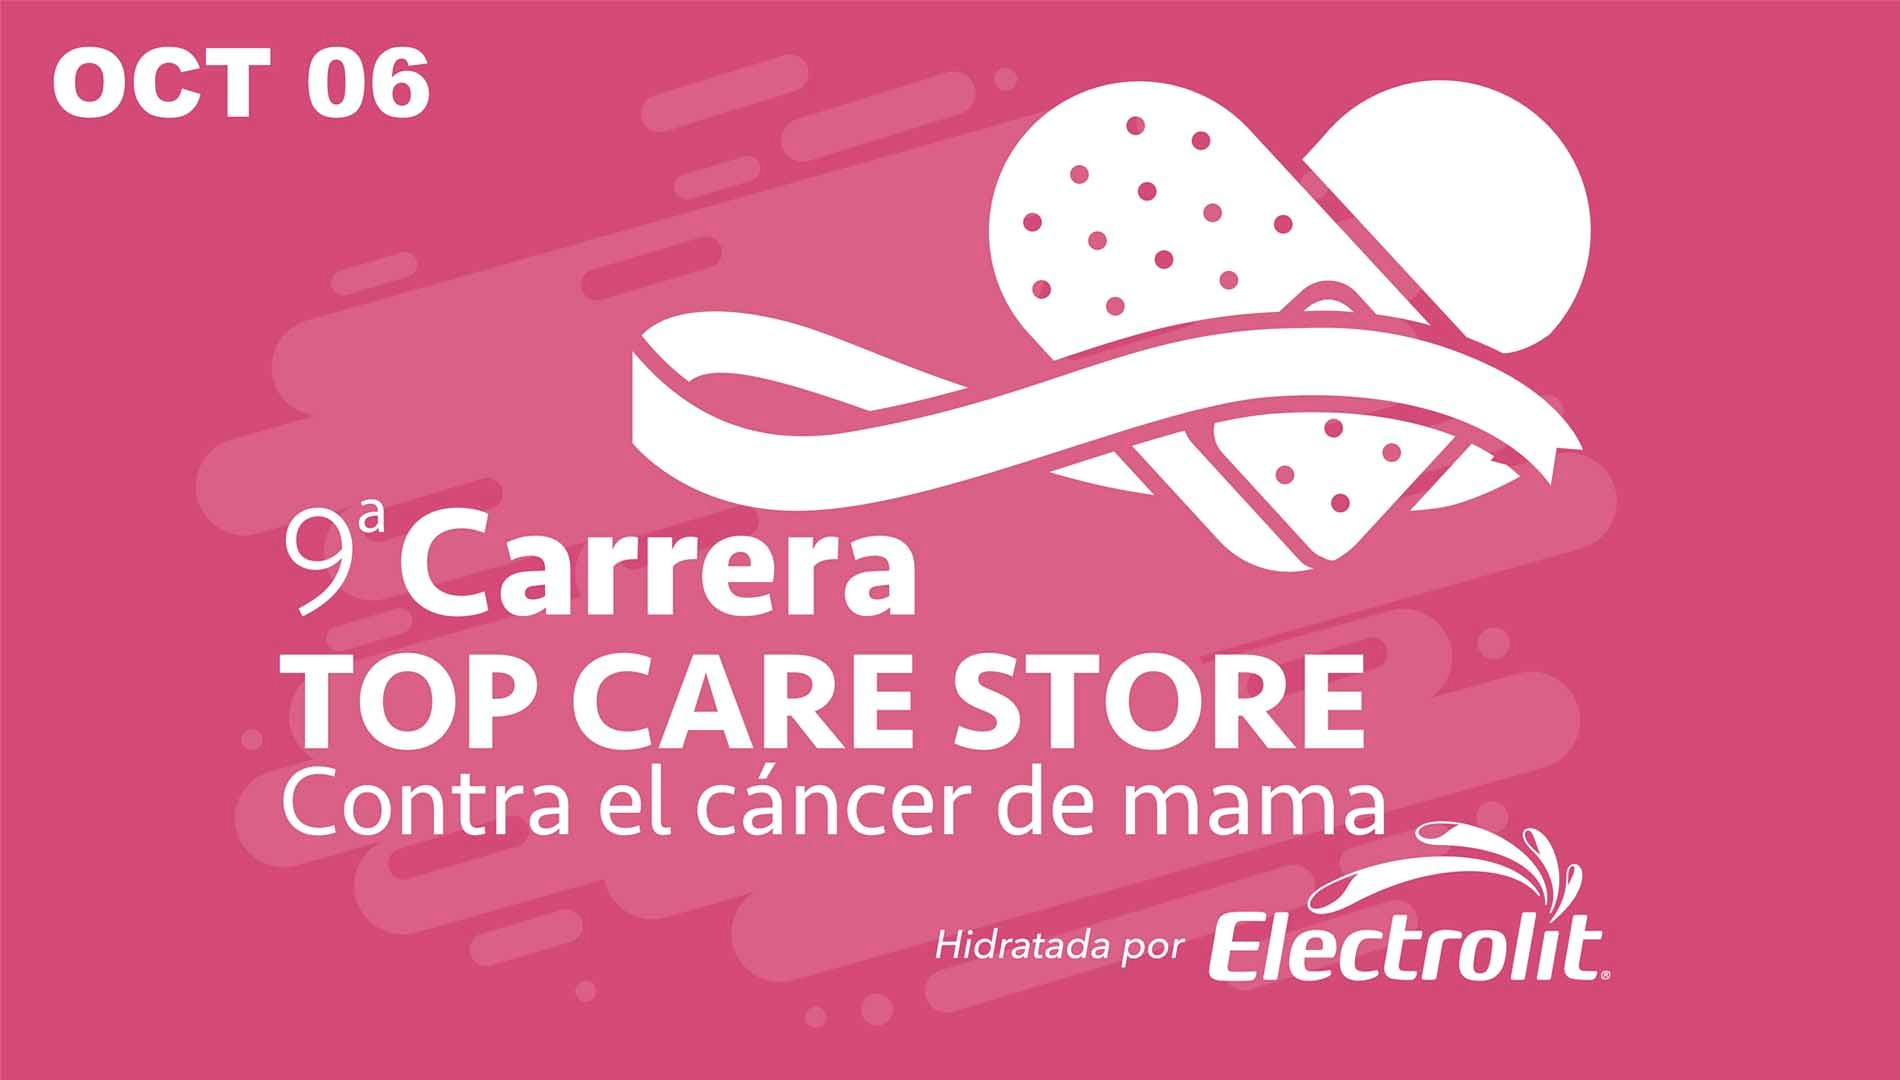 9° CARRERA TOP CARE STORE CONTRA EL CÁNCER DE MAMA